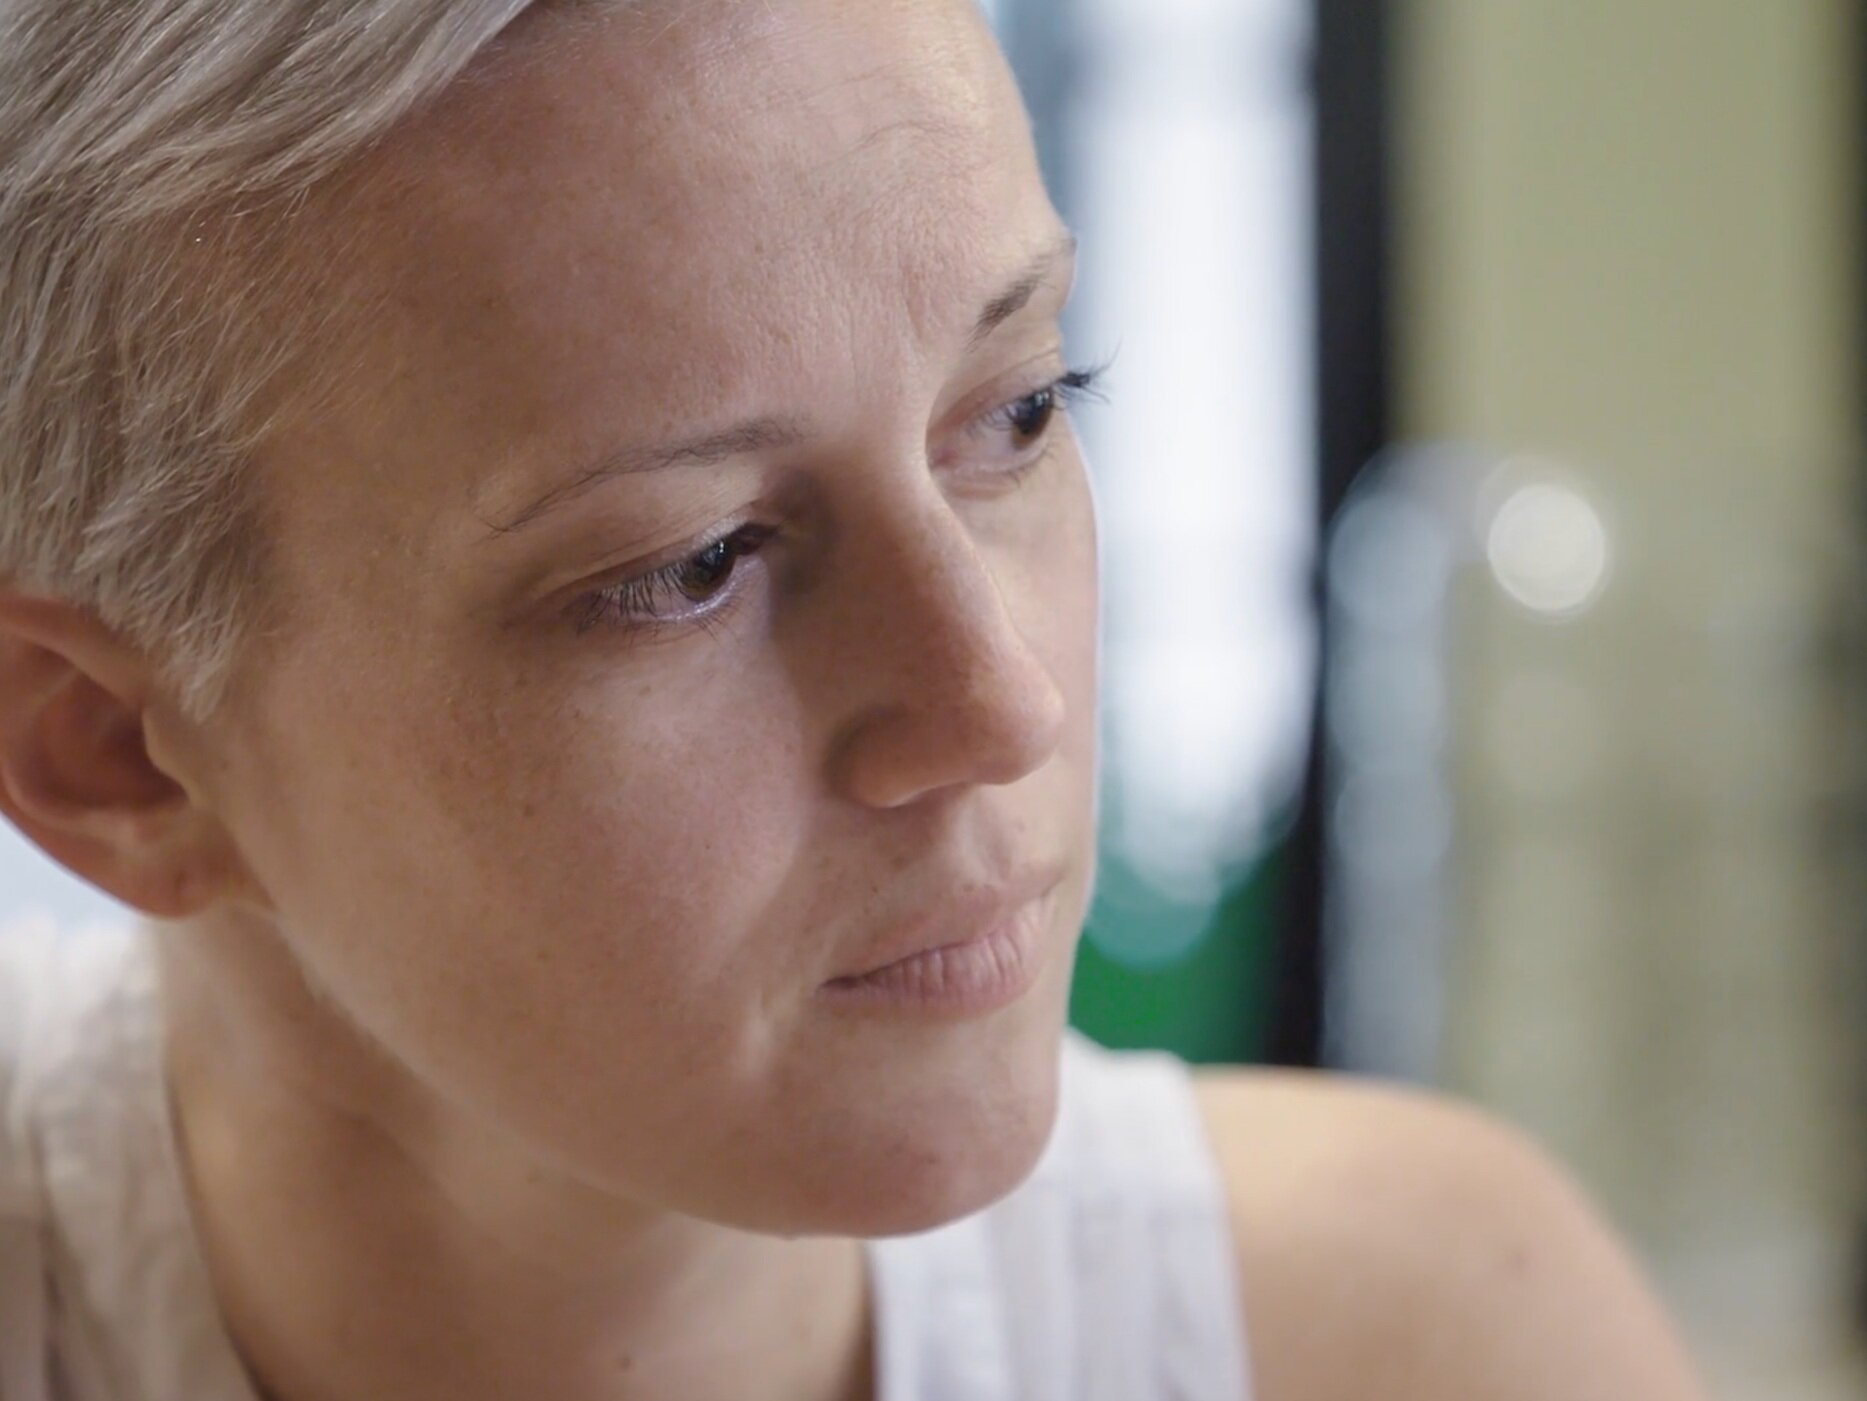 Grace - Captures the journey of a 36-year-old suburban soccer mom and breast cancer survivor who decides to reclaim her body by covering her mastectomy scars with an elaborate tattoo. Directed by a recent breast cancer survivor and created by an all-female crew.Run time: 16 minutesDirector: Rachel Pikelny *